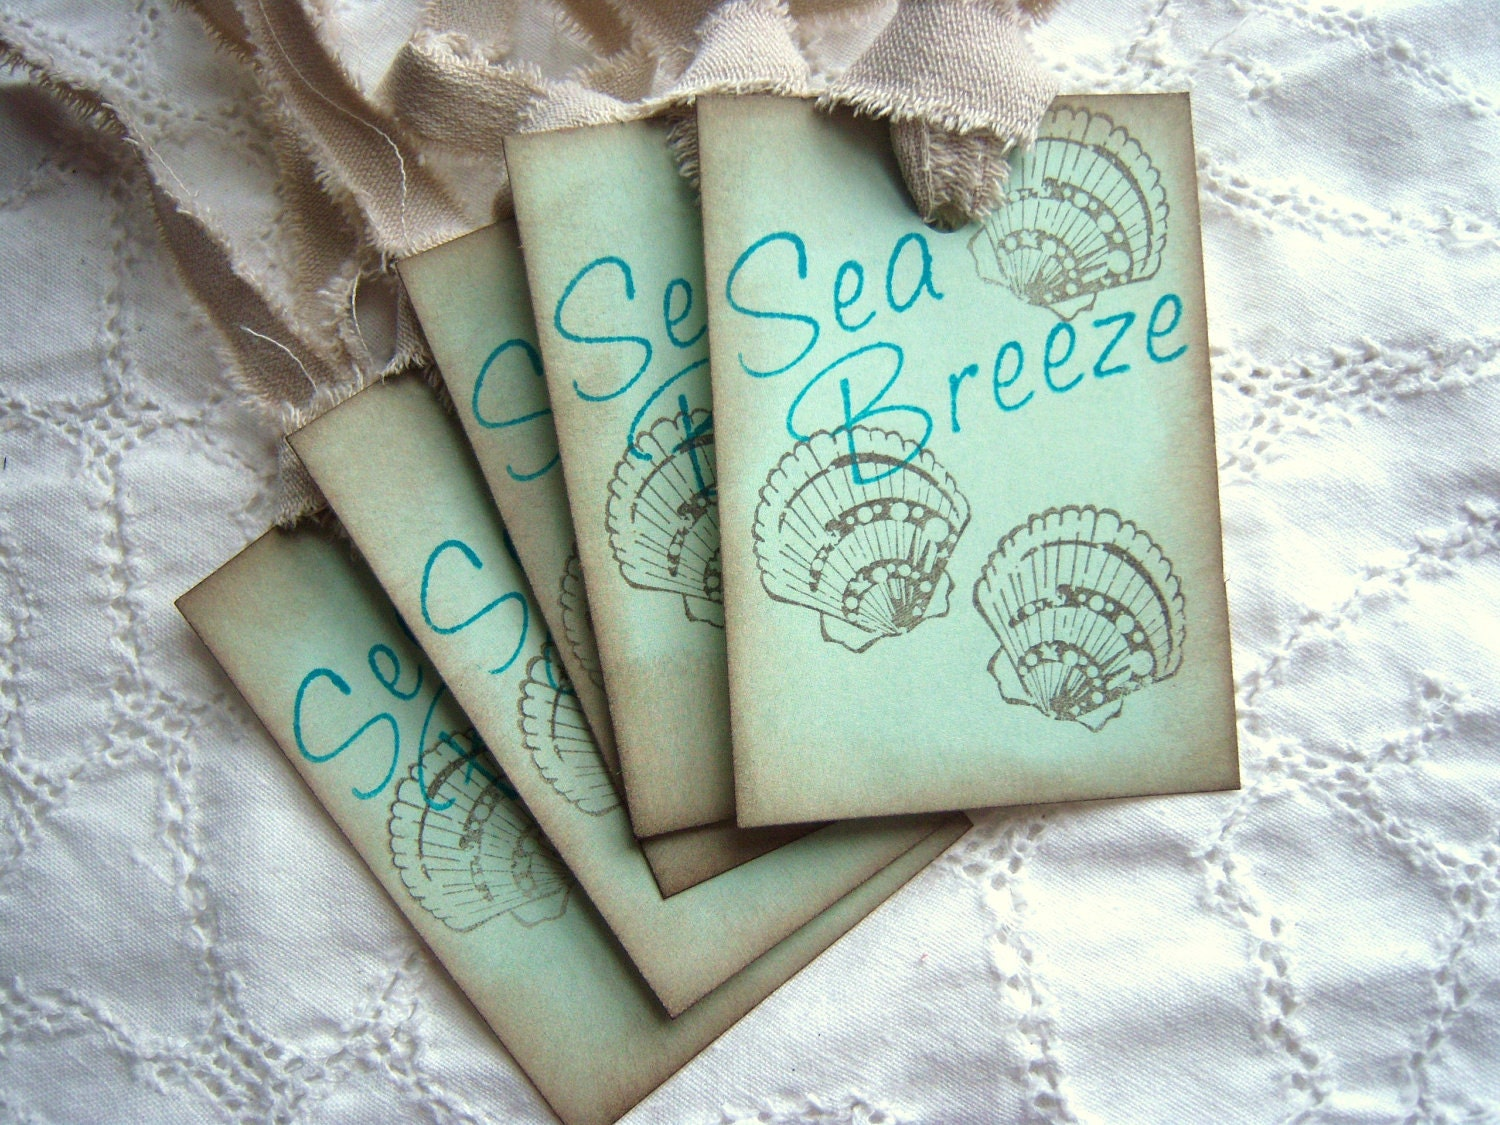 Sea Breeze and Sea Shells - Vintage Inspired Shabby Chic Hang Tags